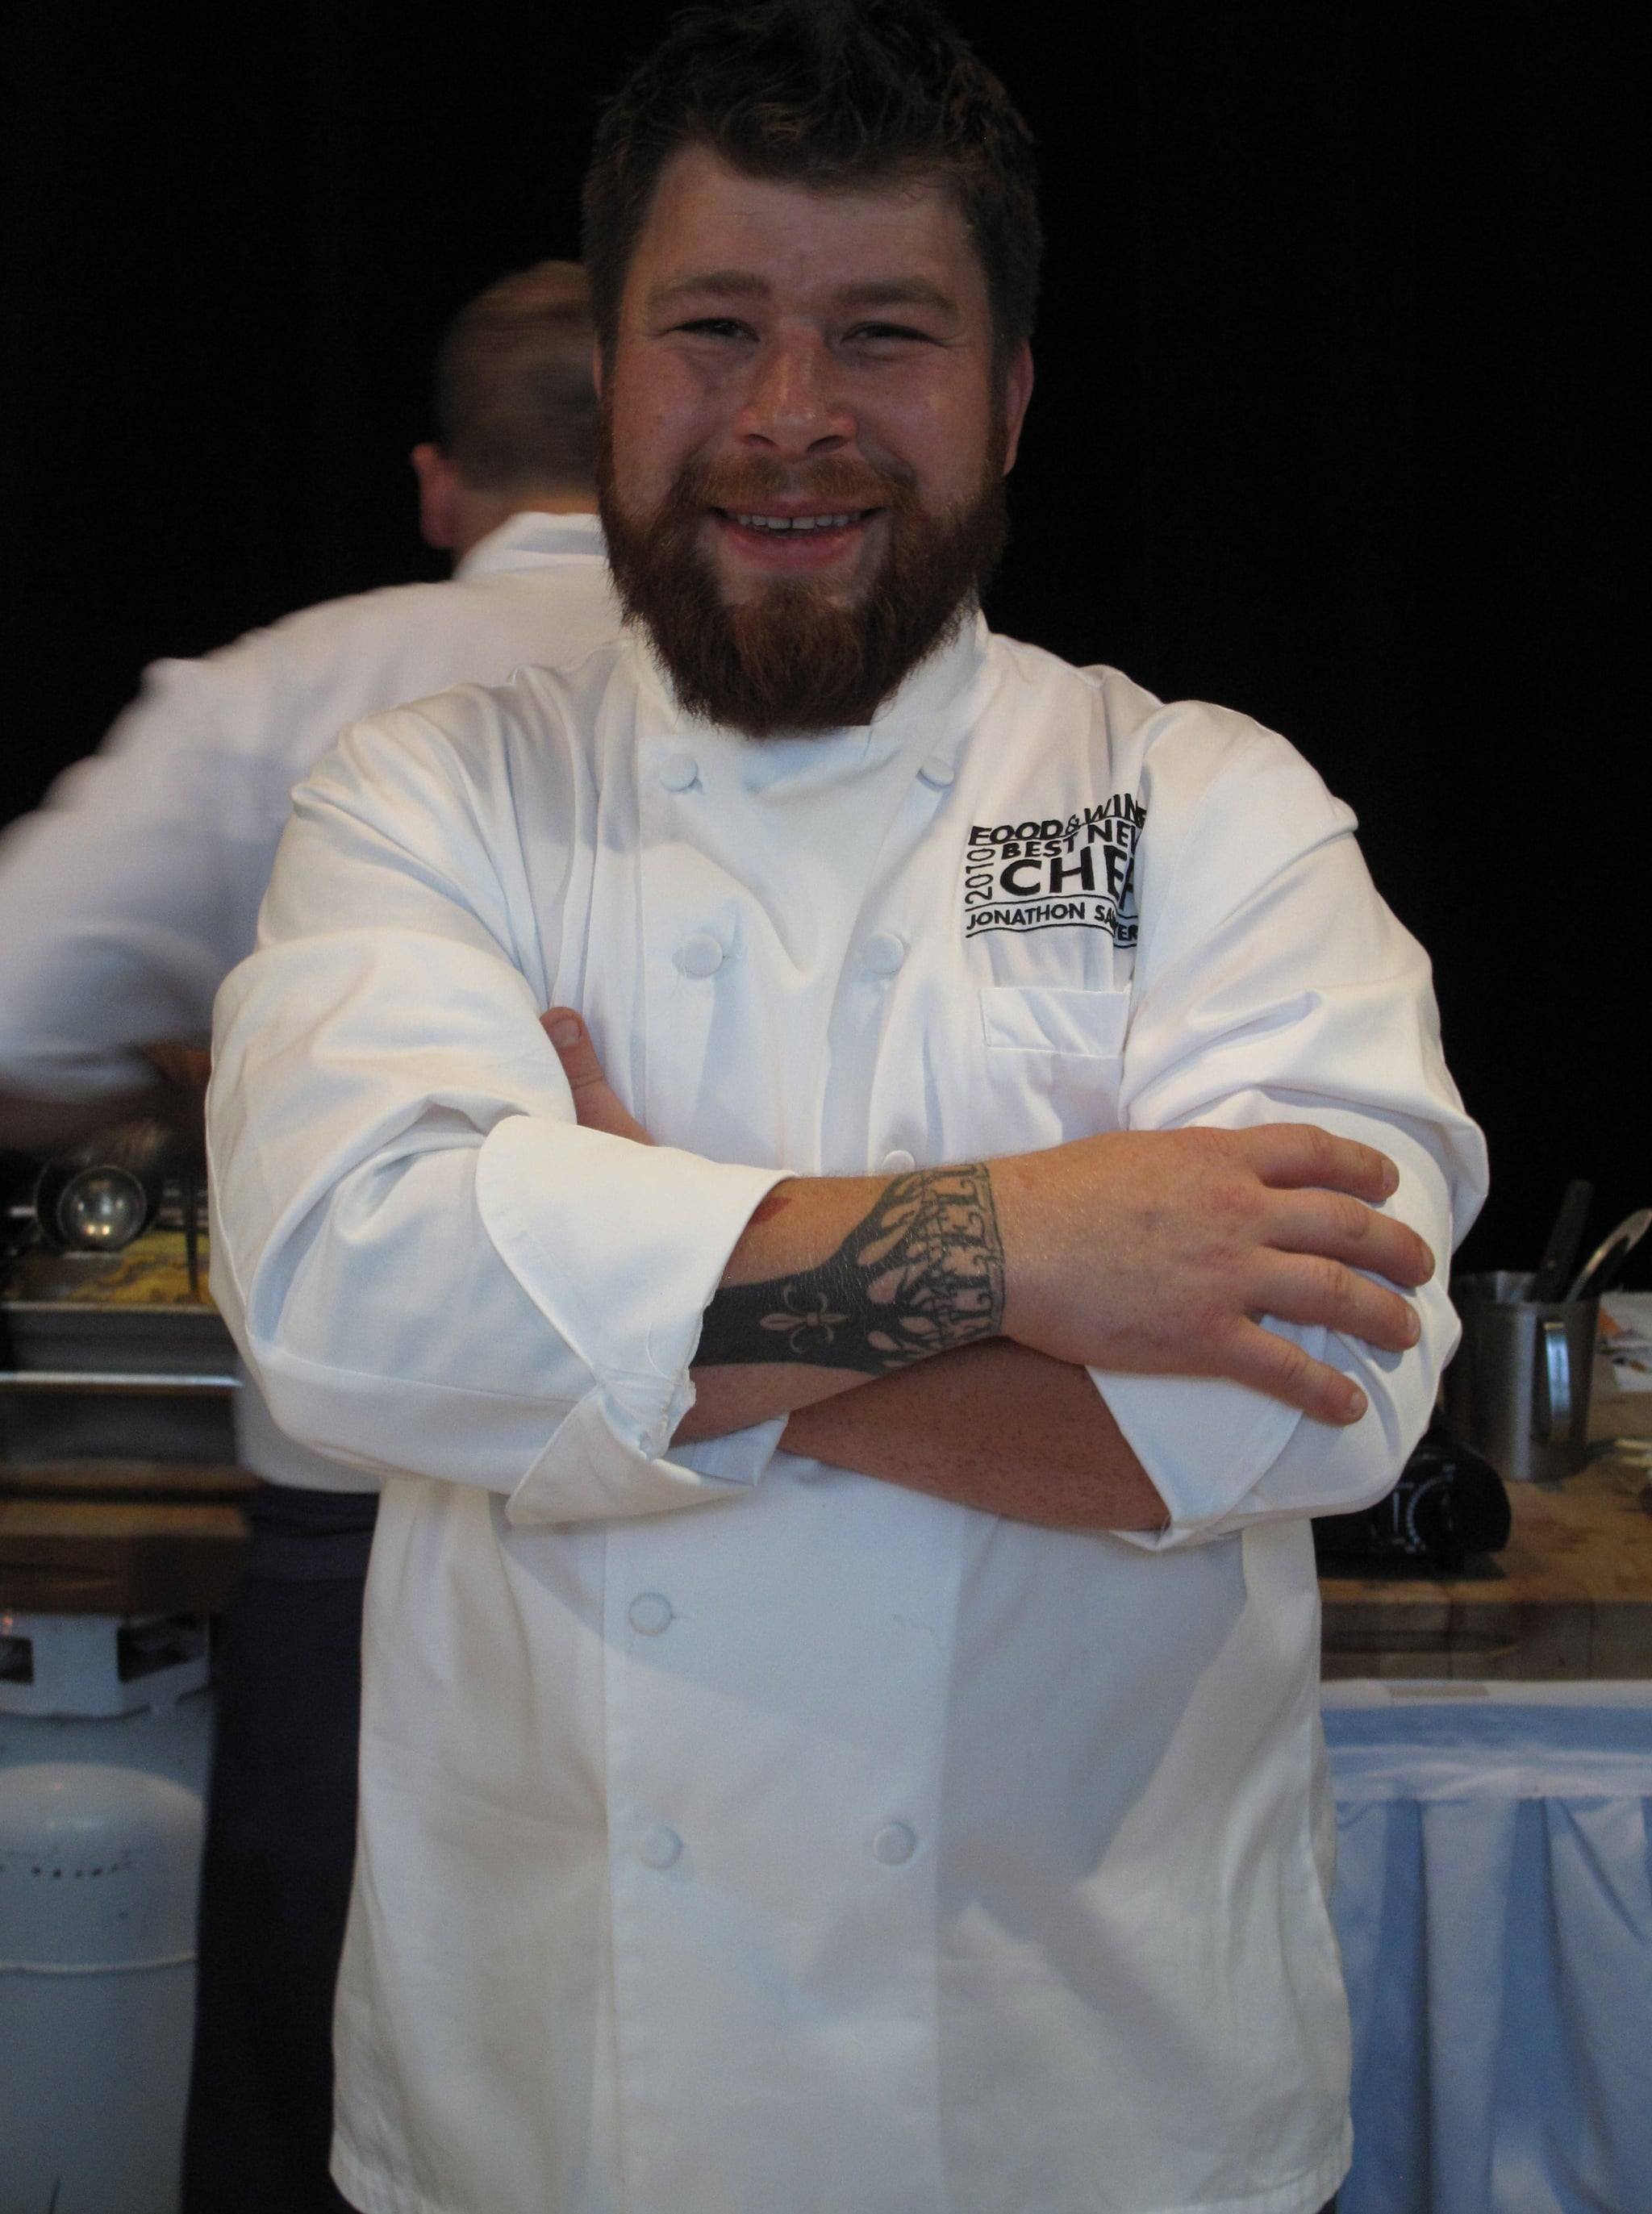 The Best New Chef: Jonathon Sawyer